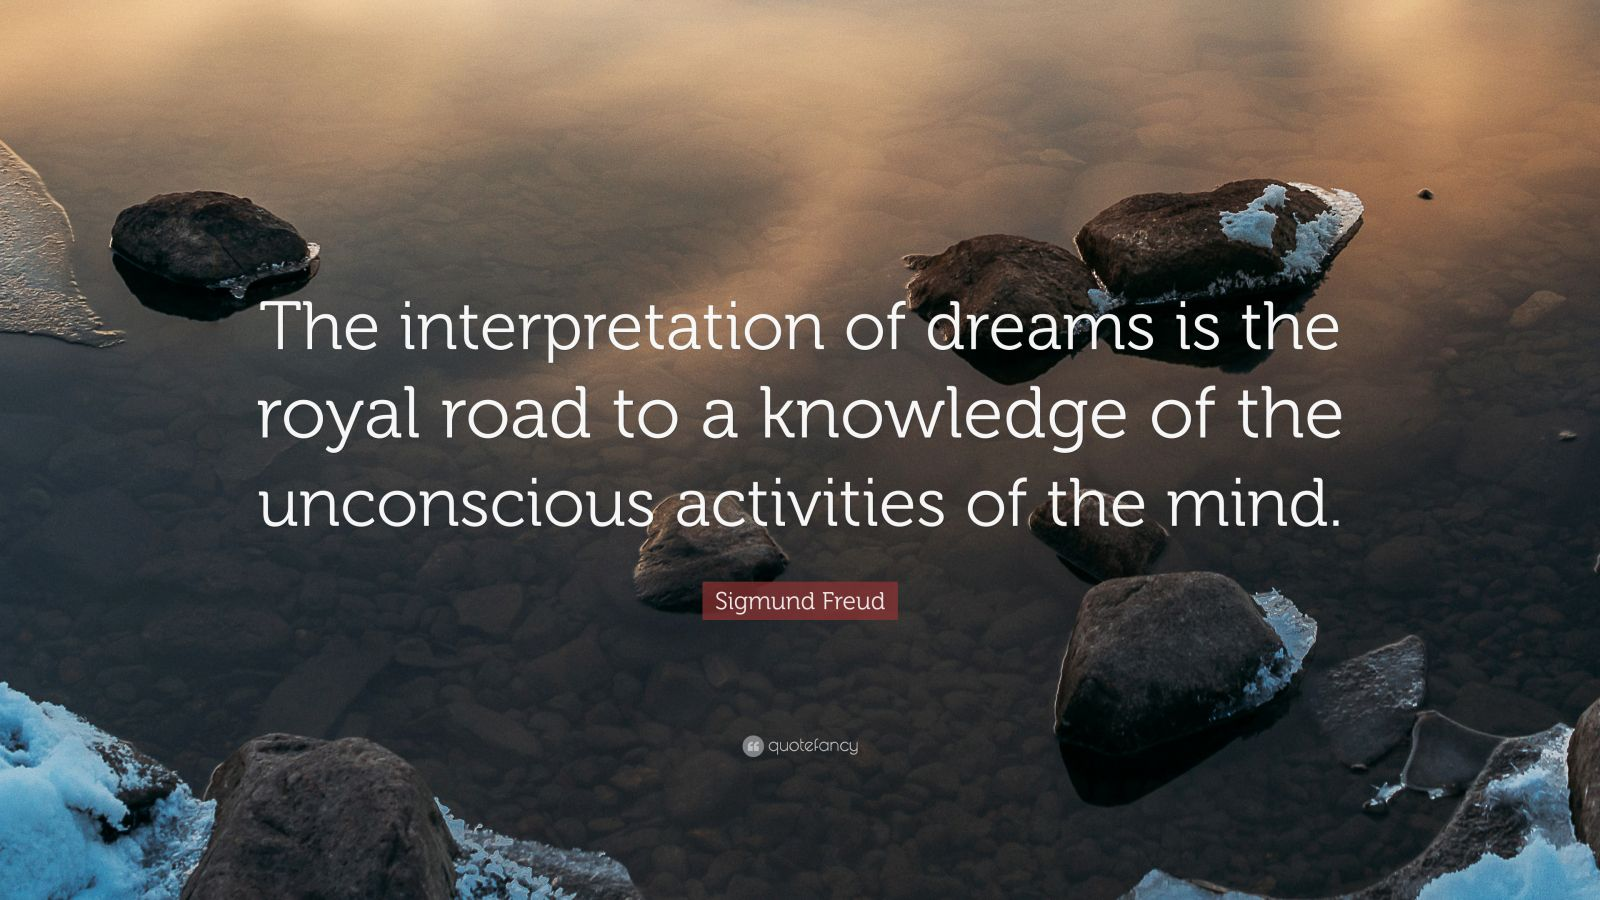 an analysis of the dreams as the royal road to the unconscious Start studying psych 101 ch 11 in dream analysis, the true, hidden, unconscious meaning that is the interpretation of dreams is the royal road to a.